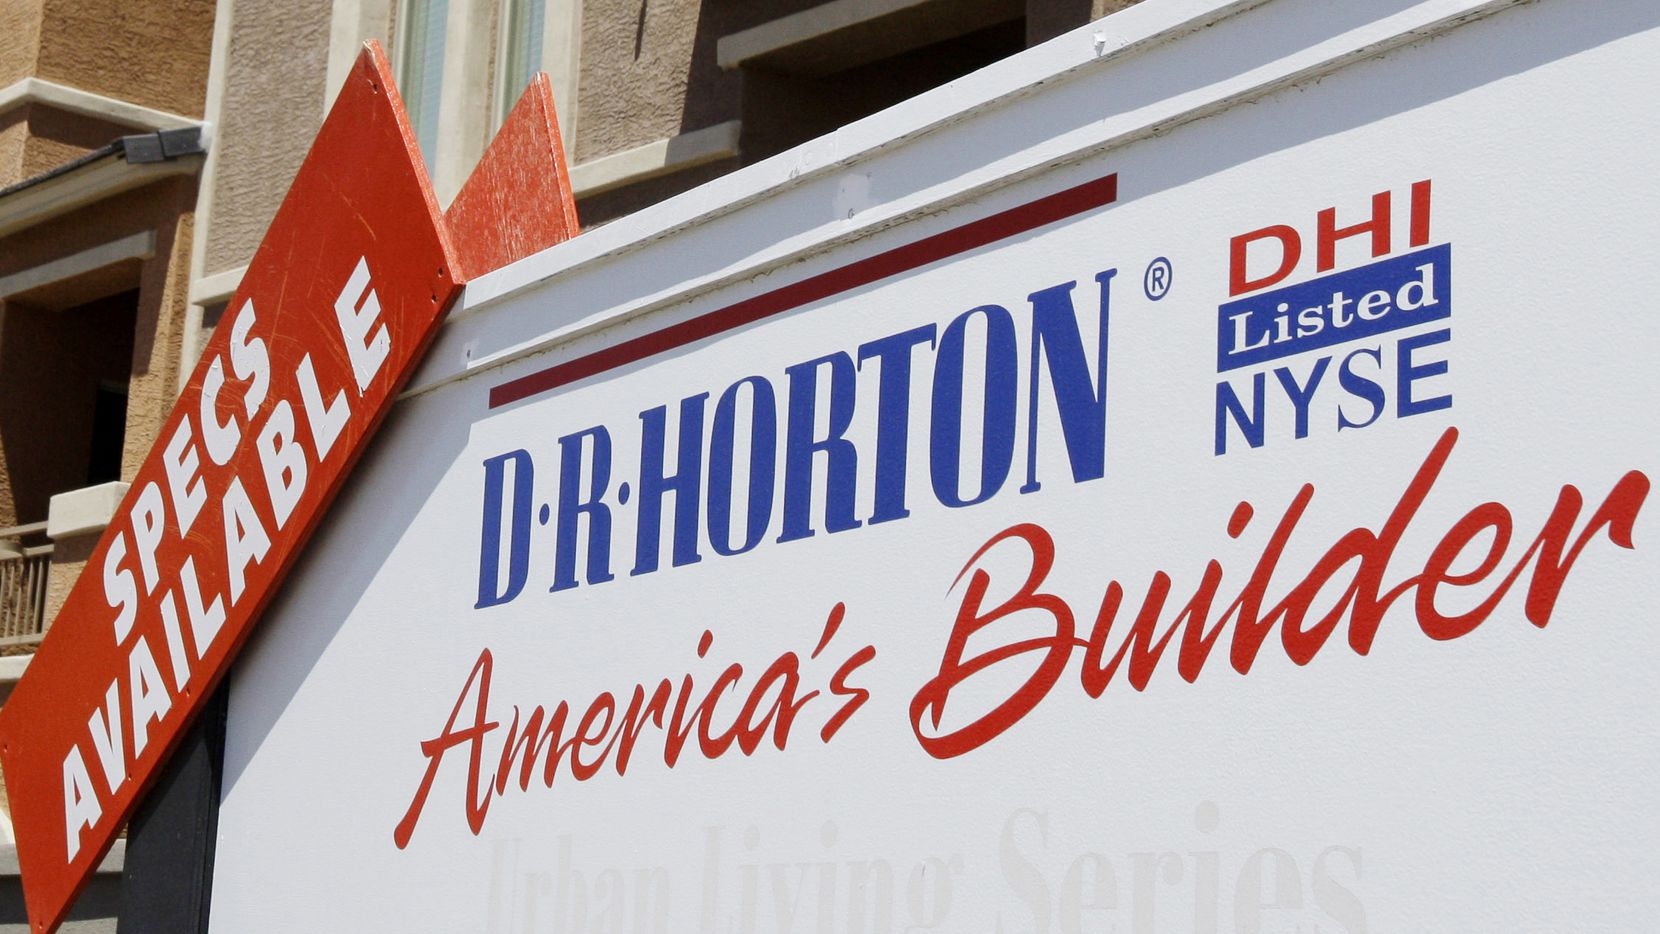 In this May 7, 2009 file photo, a sign advertising homes built by D.R. Horton Inc. is displayed in Chandler, Ariz. The company was founded in Arlington in 1978.